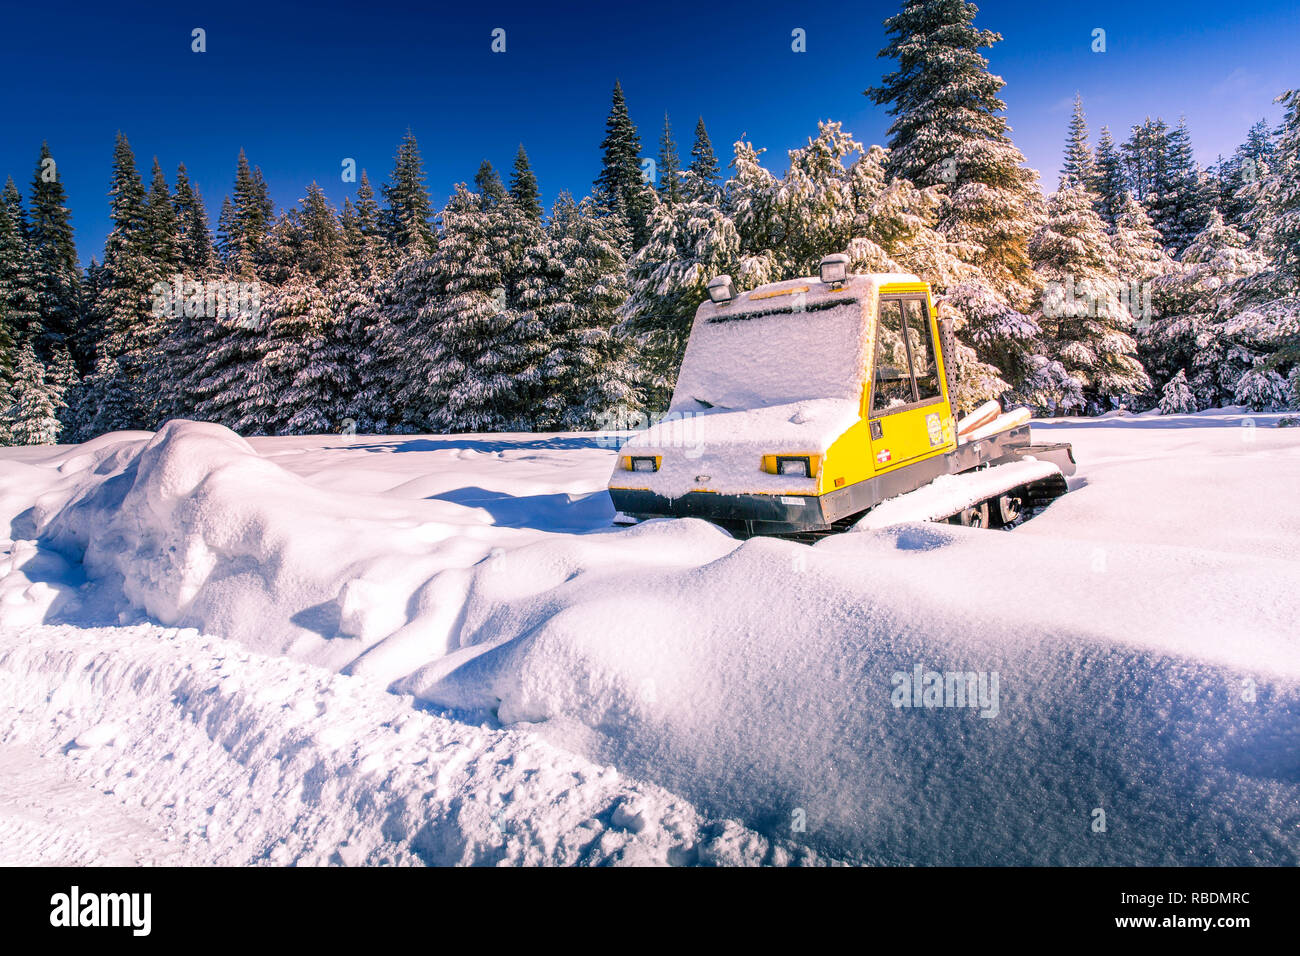 Yellow tractor crawler covered under snow on Icy country road in snowy forest in winter. Winter landscape with snowy road - Stock Image